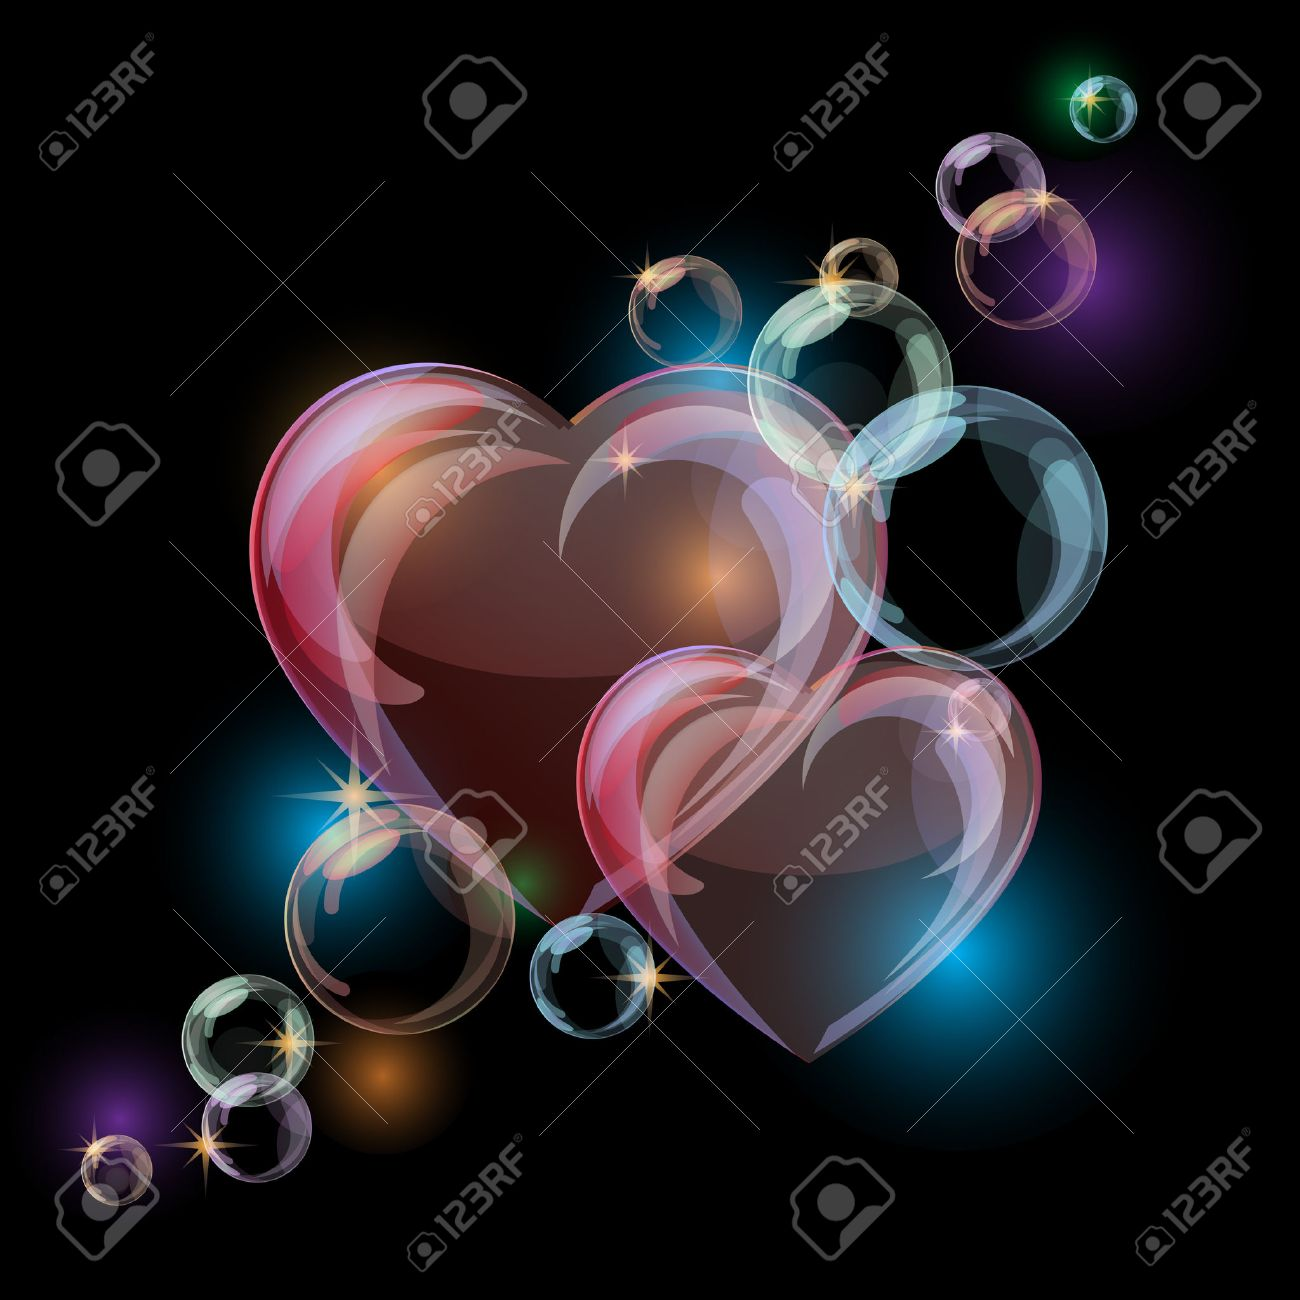 Romantic background with colorful bubble hearts shapes on black background. Vector illustration - 37984576